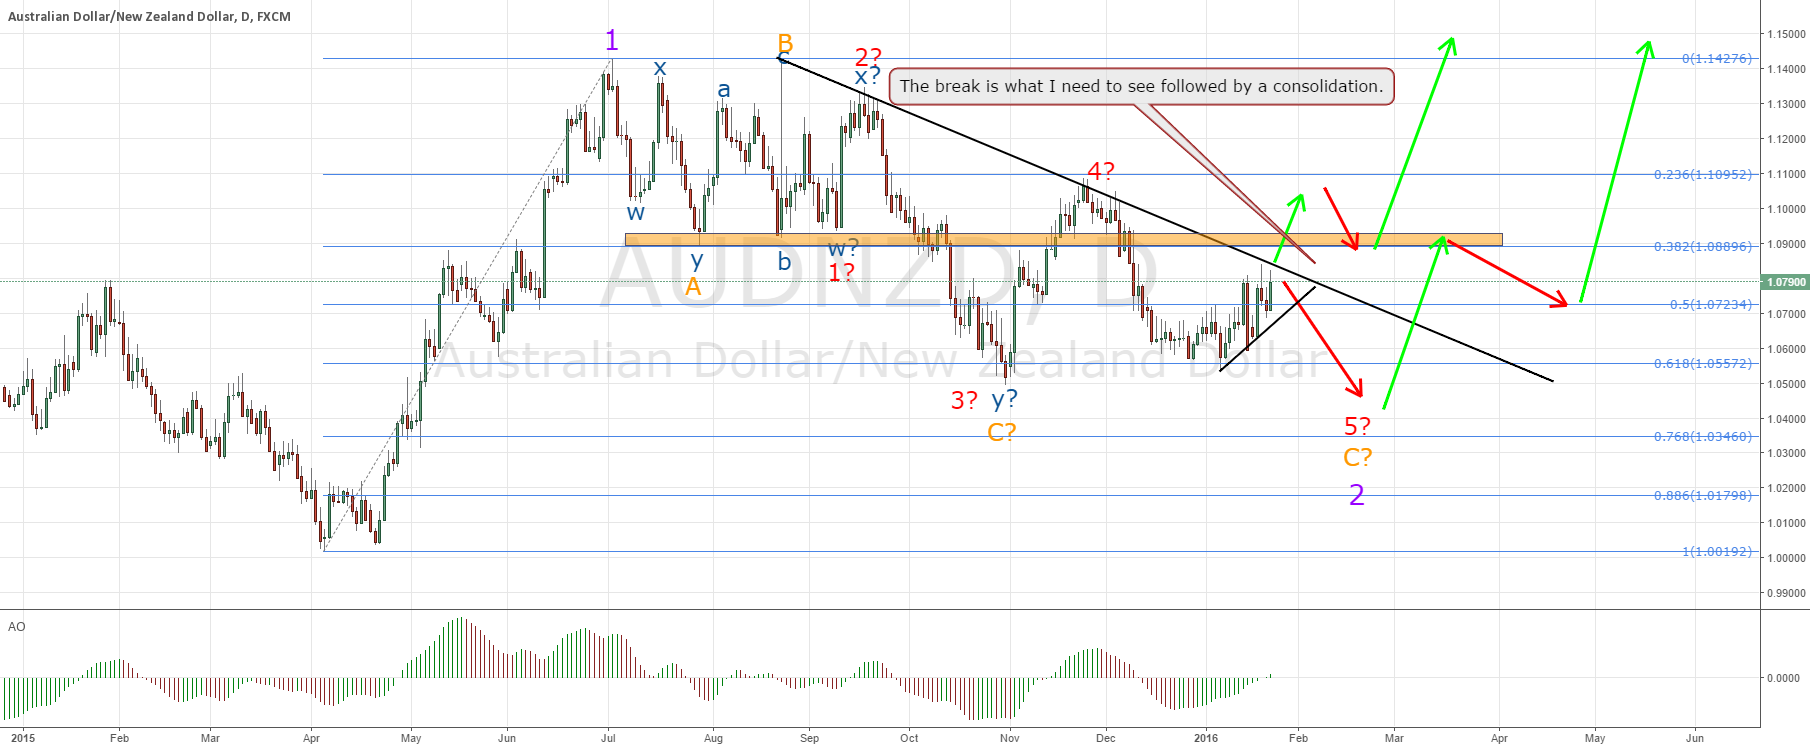 AUDNZD setting up for major impulse